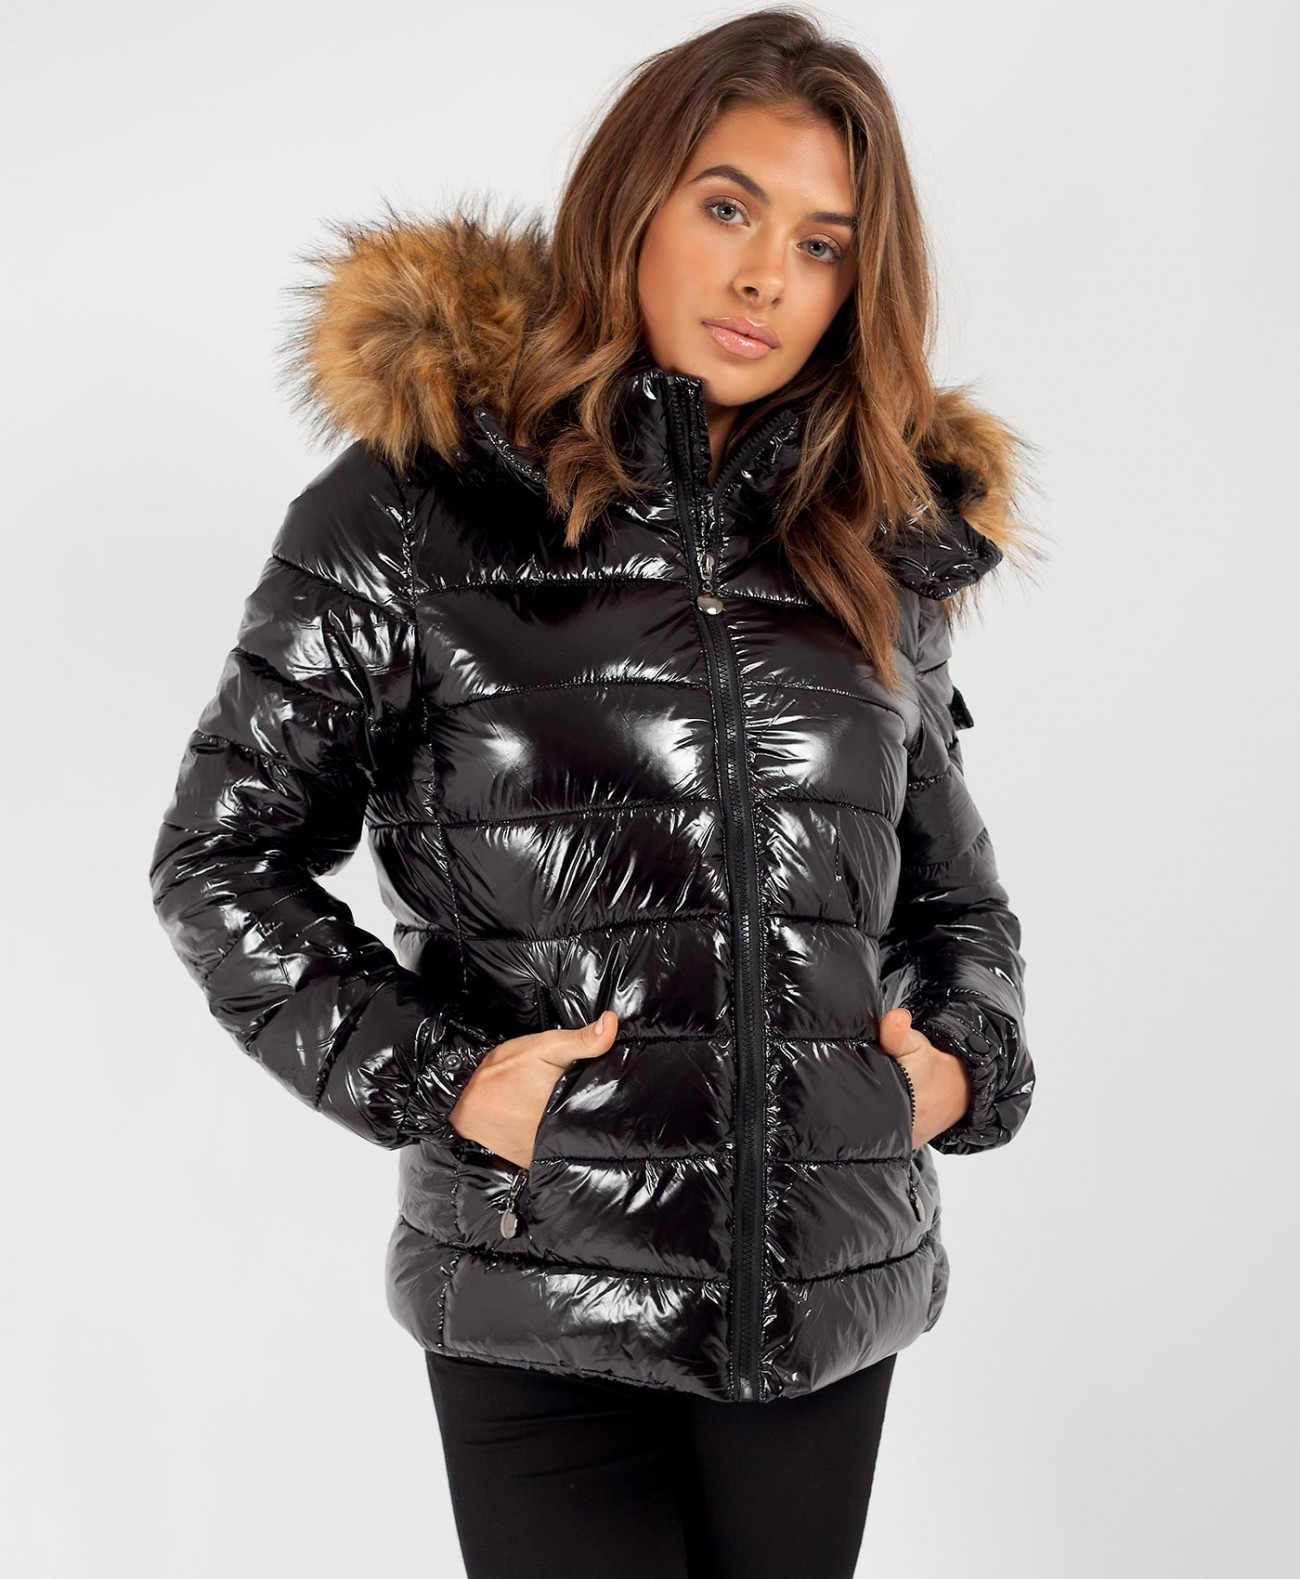 outlet for sale differently newest collection Black Chunky Faux Fur Hood Shiny Wet Look Puffer Jacket | LexiFashion